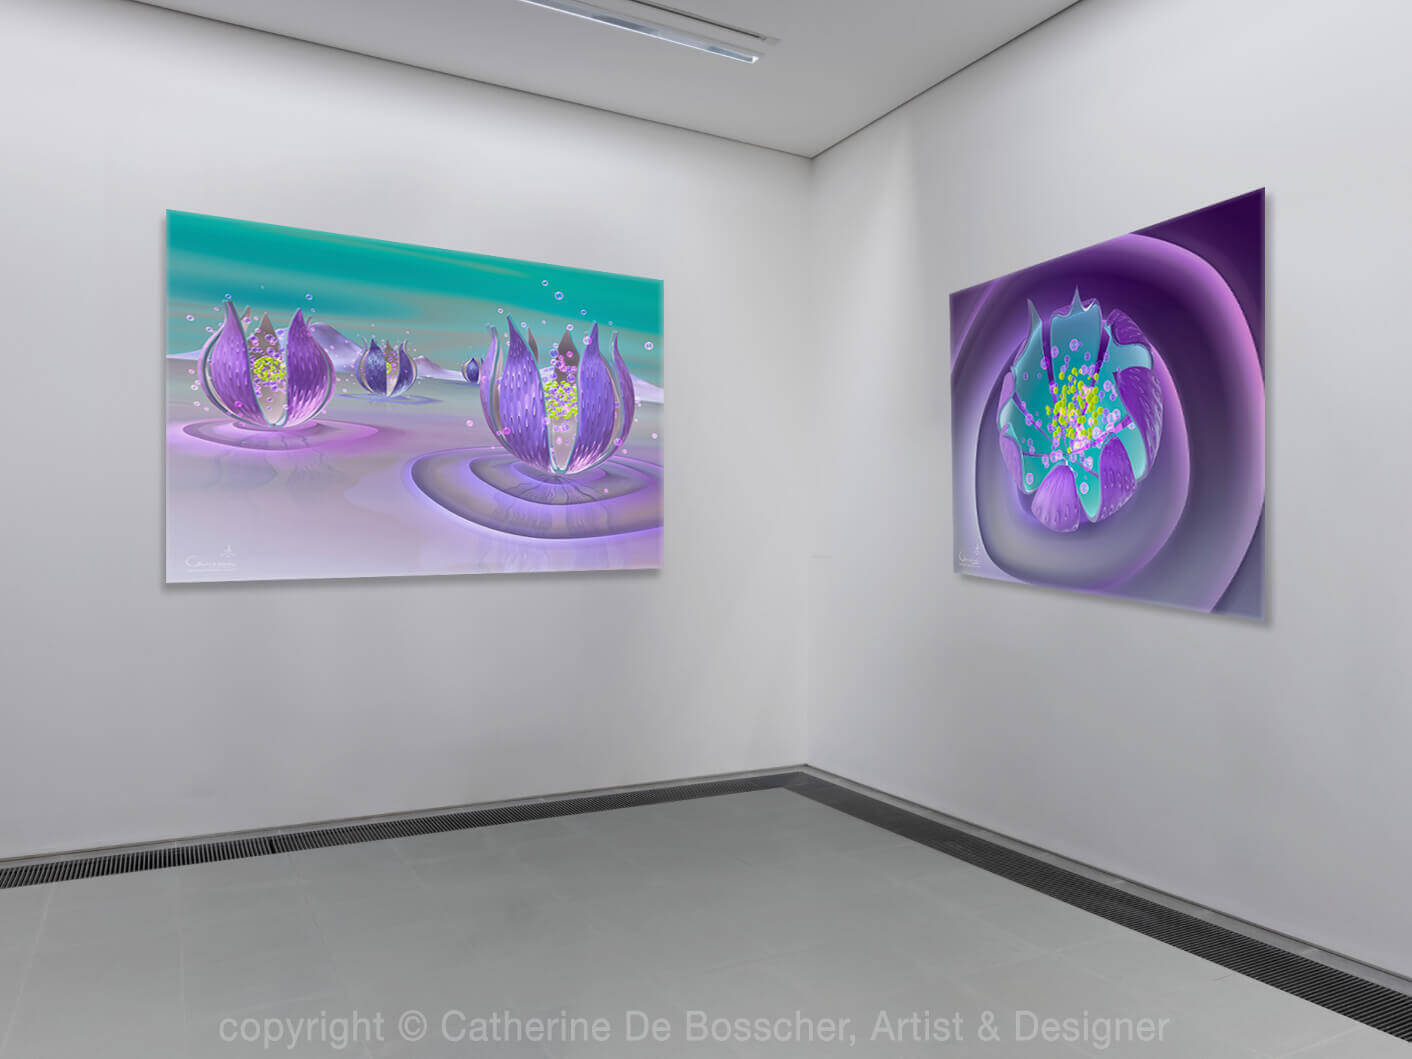 'Purple Capsule I & III' 100x80 cm by Catherine De Bosscher